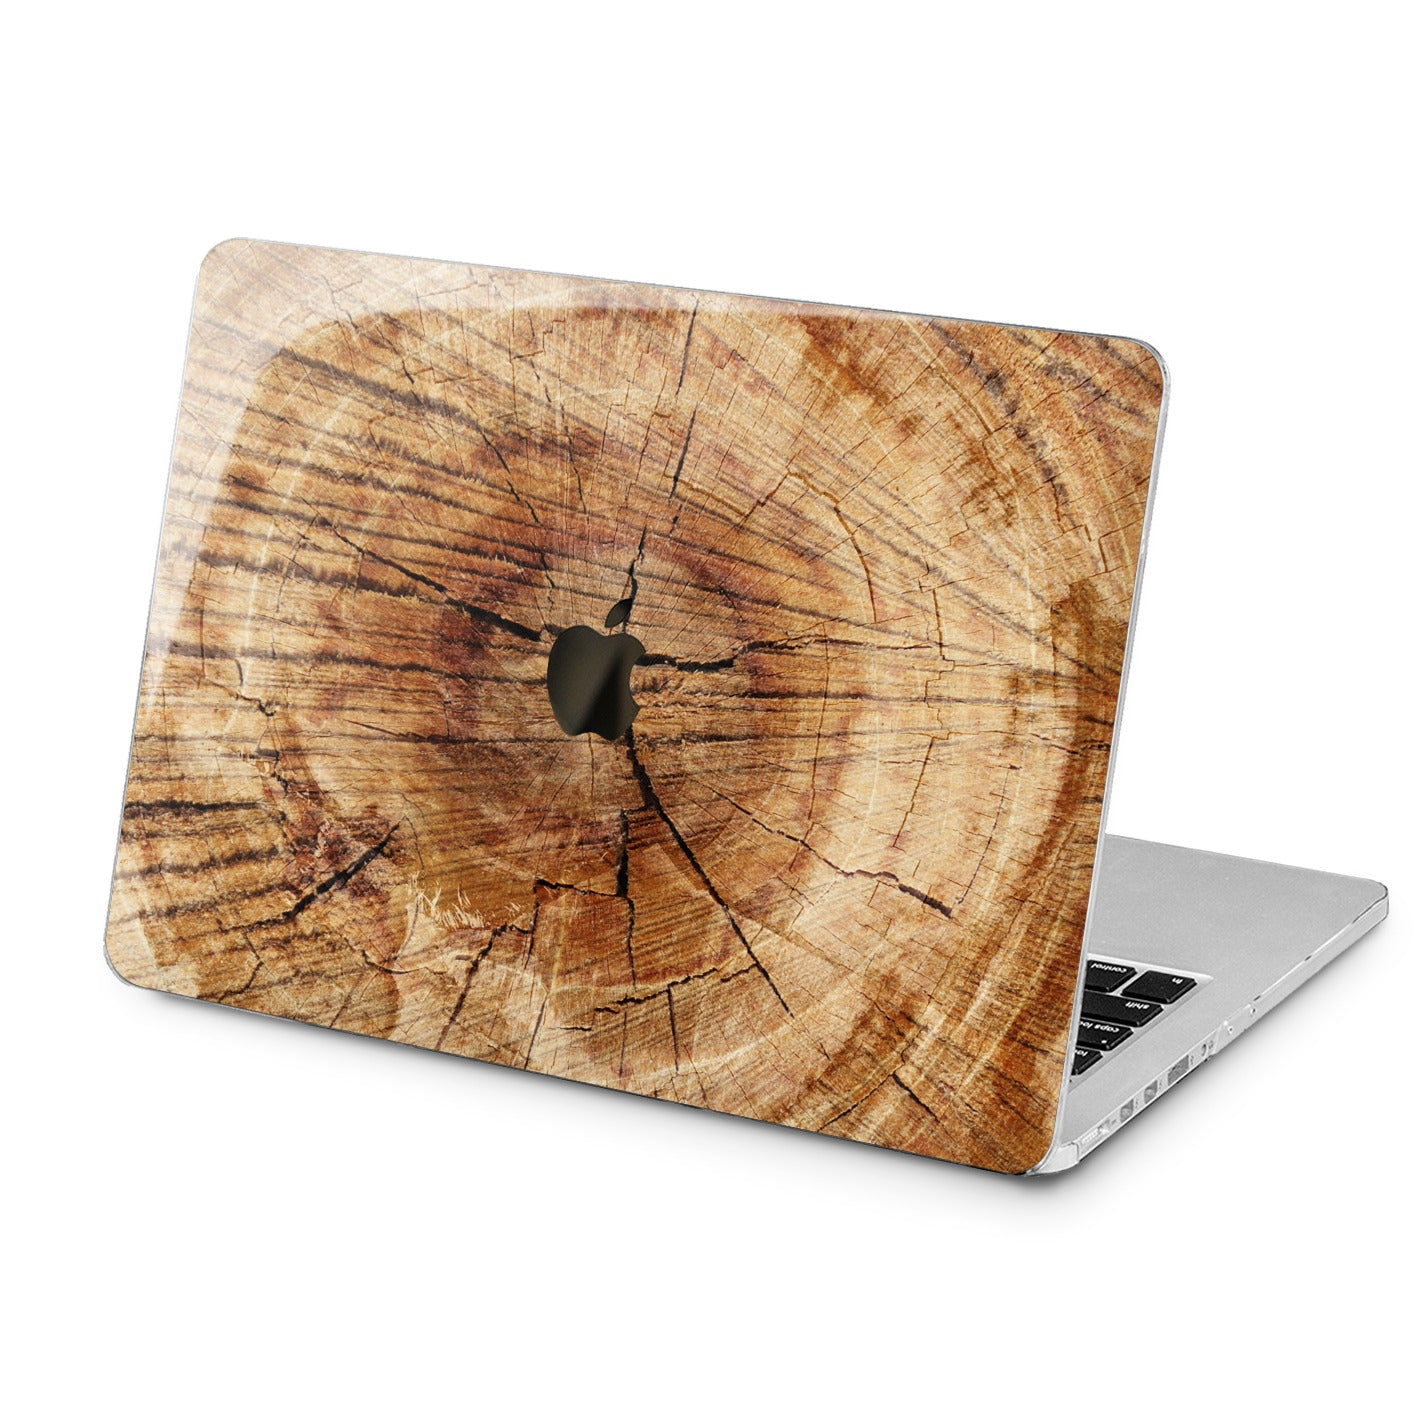 Lex Altern Lex Altern Tree Trunk Case for your Laptop Apple Macbook.